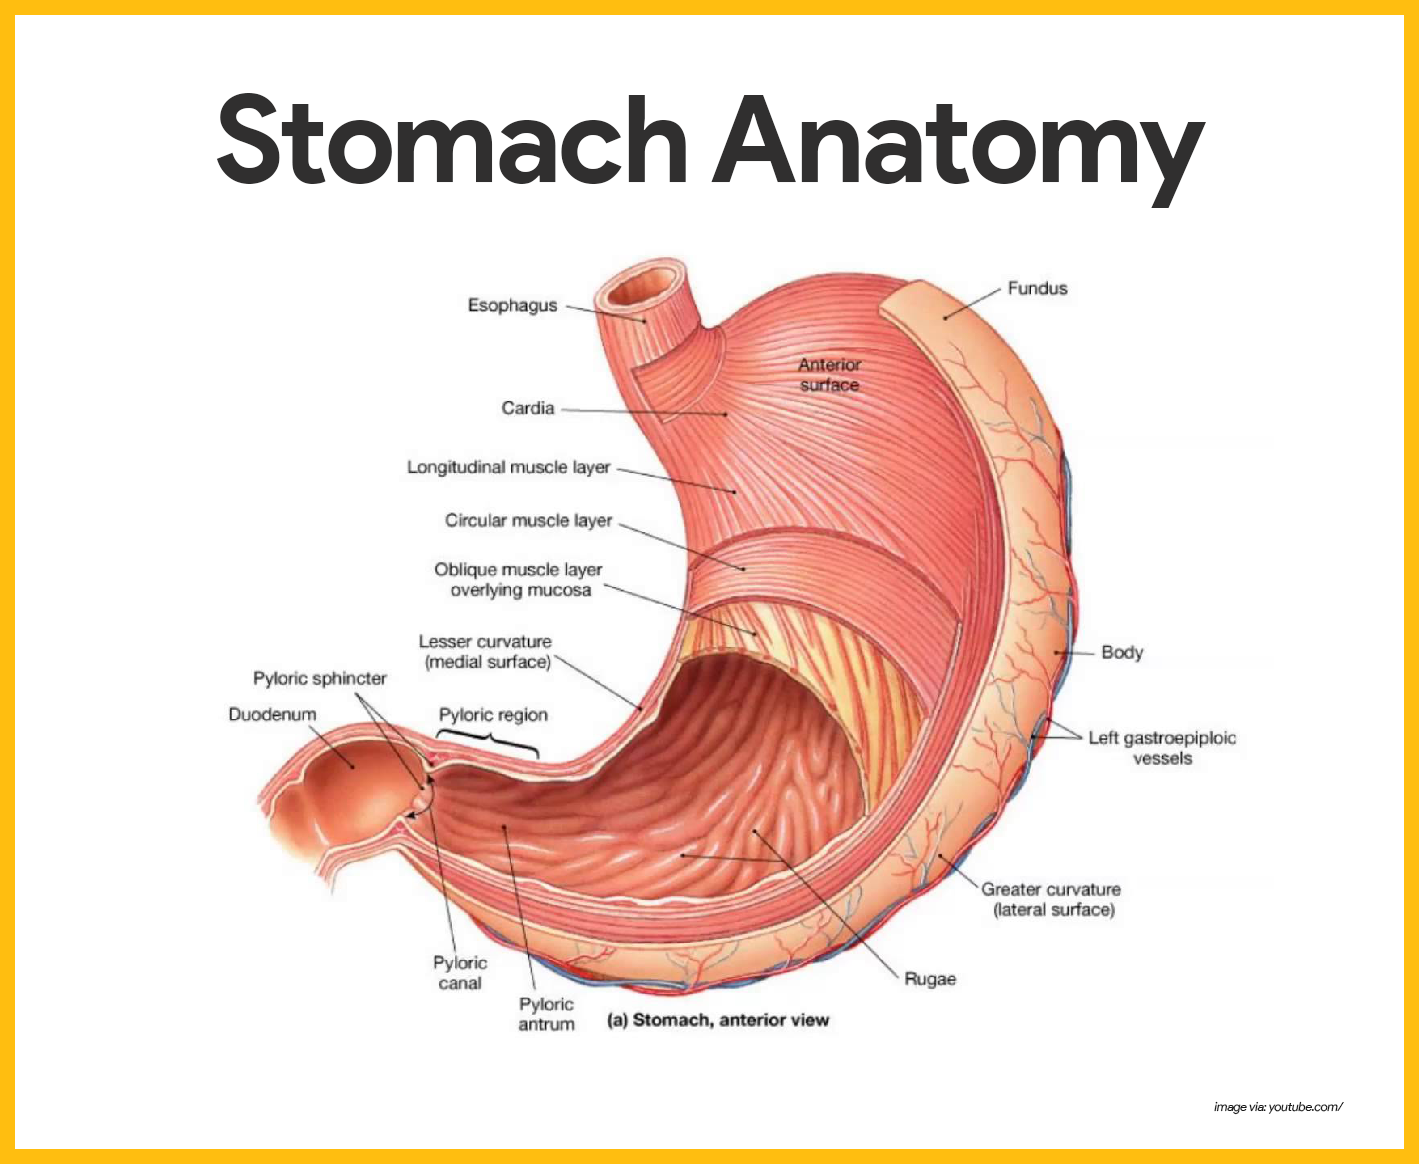 Digestive System Anatomy and Physiology | Pinterest | Anatomy ...